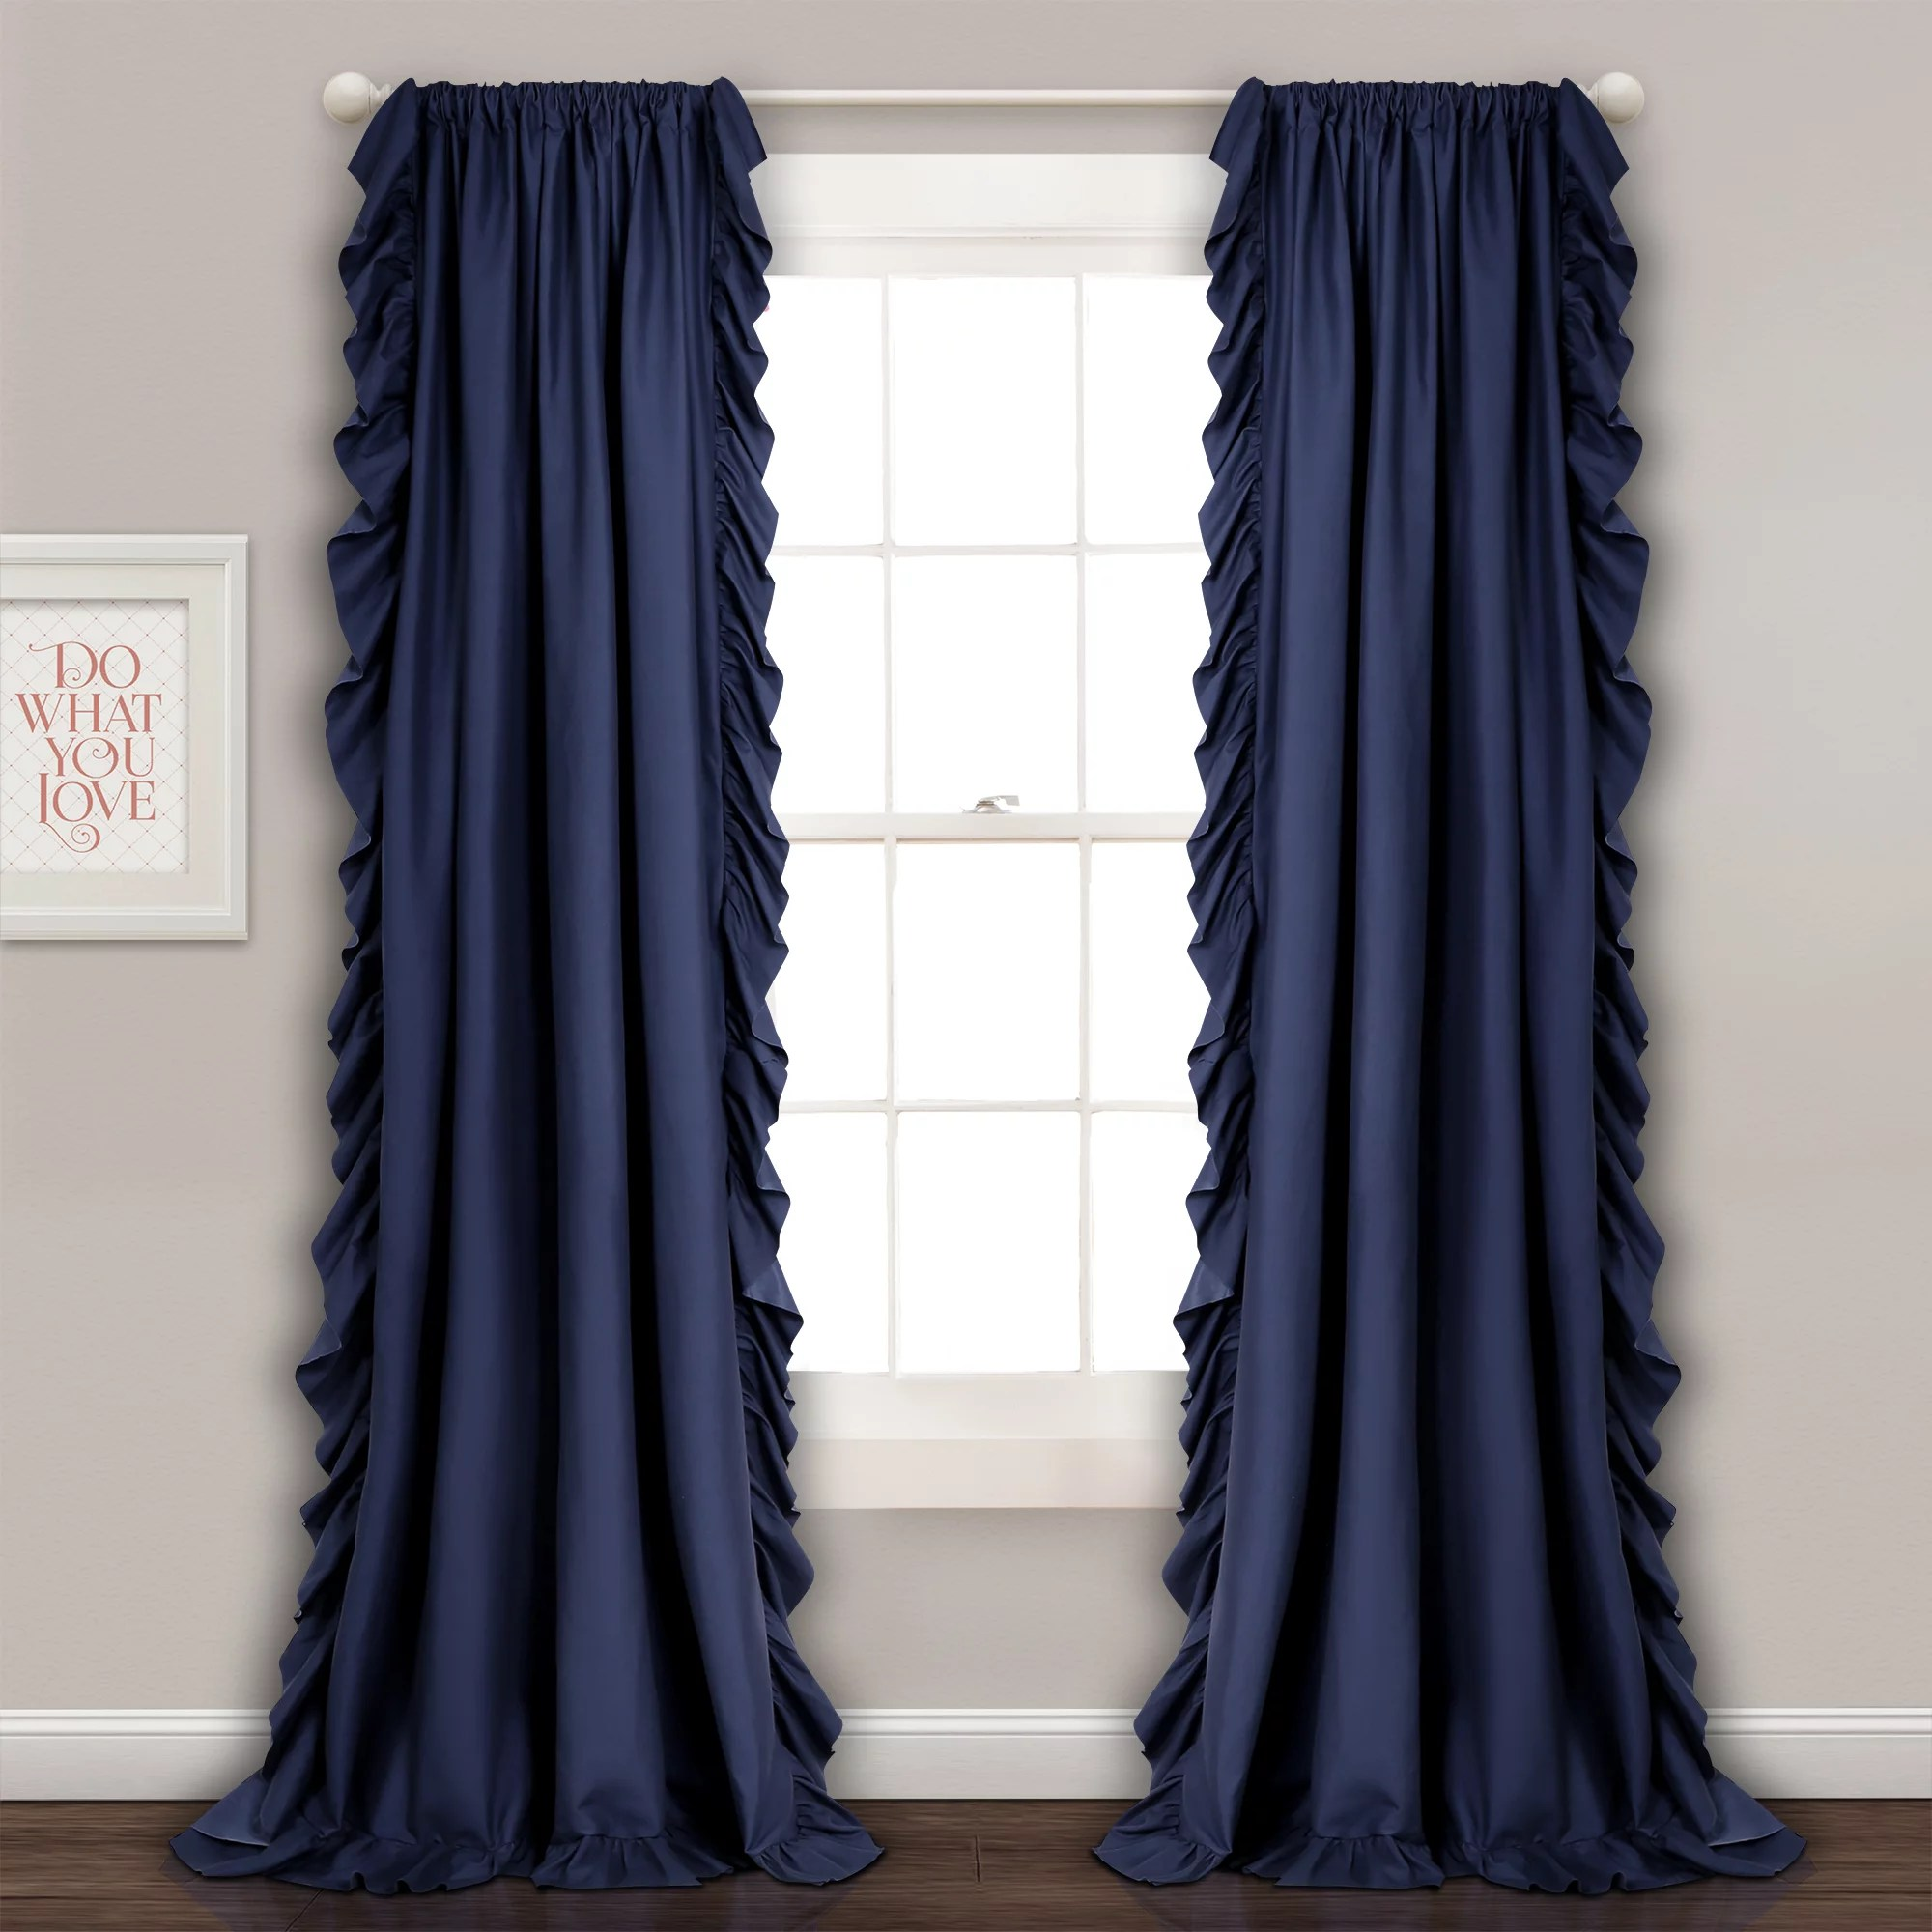 105 Inch Curtains Curtains Window Treatments Walmart